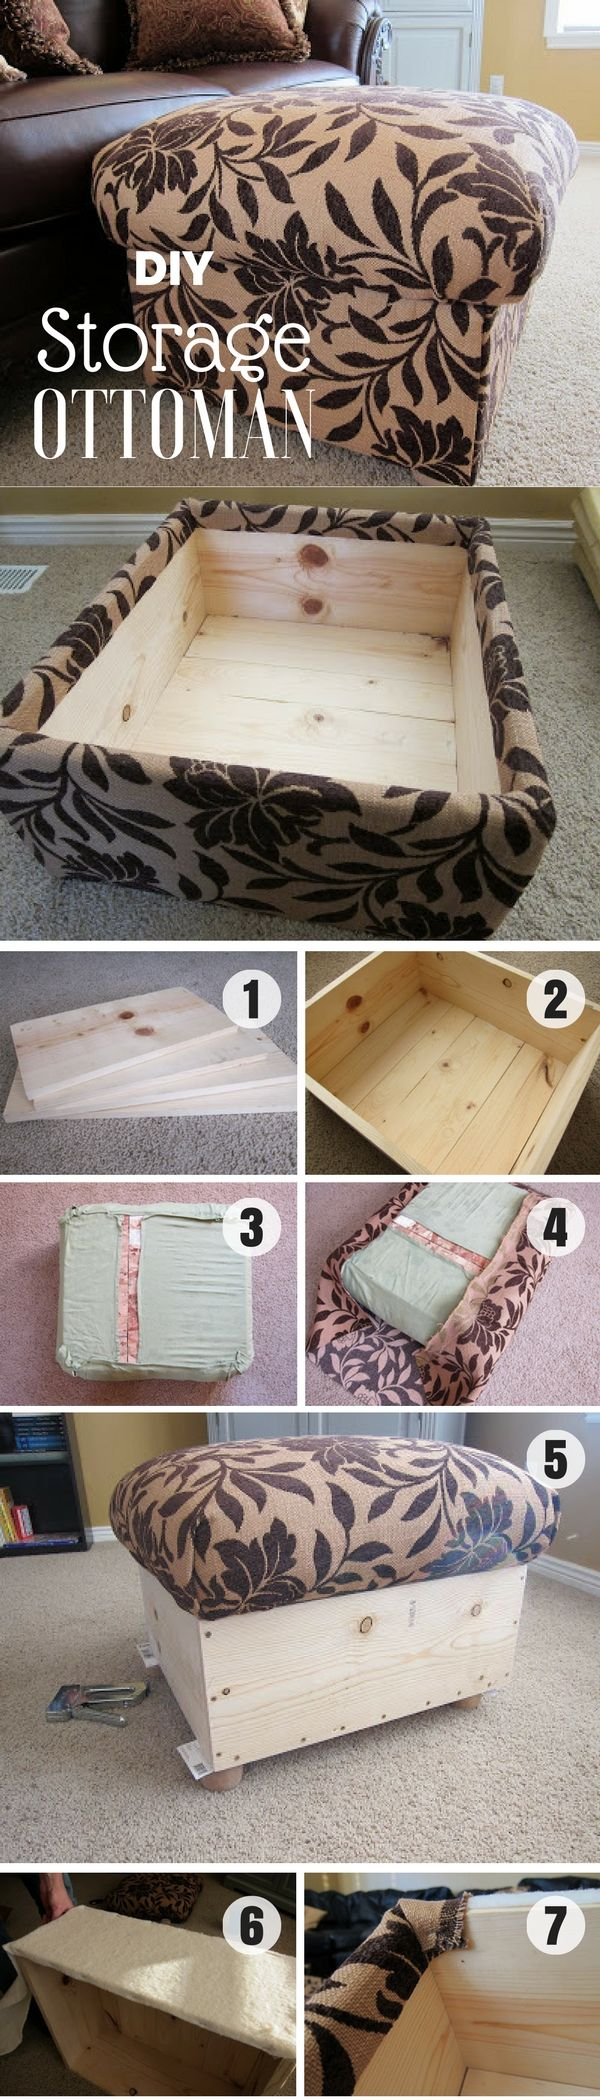 15 Easy DIY Ottoman Ideas You Can Actually Make Yourself - 25+ Best Ideas About Diy Ottoman On Pinterest Refurbished